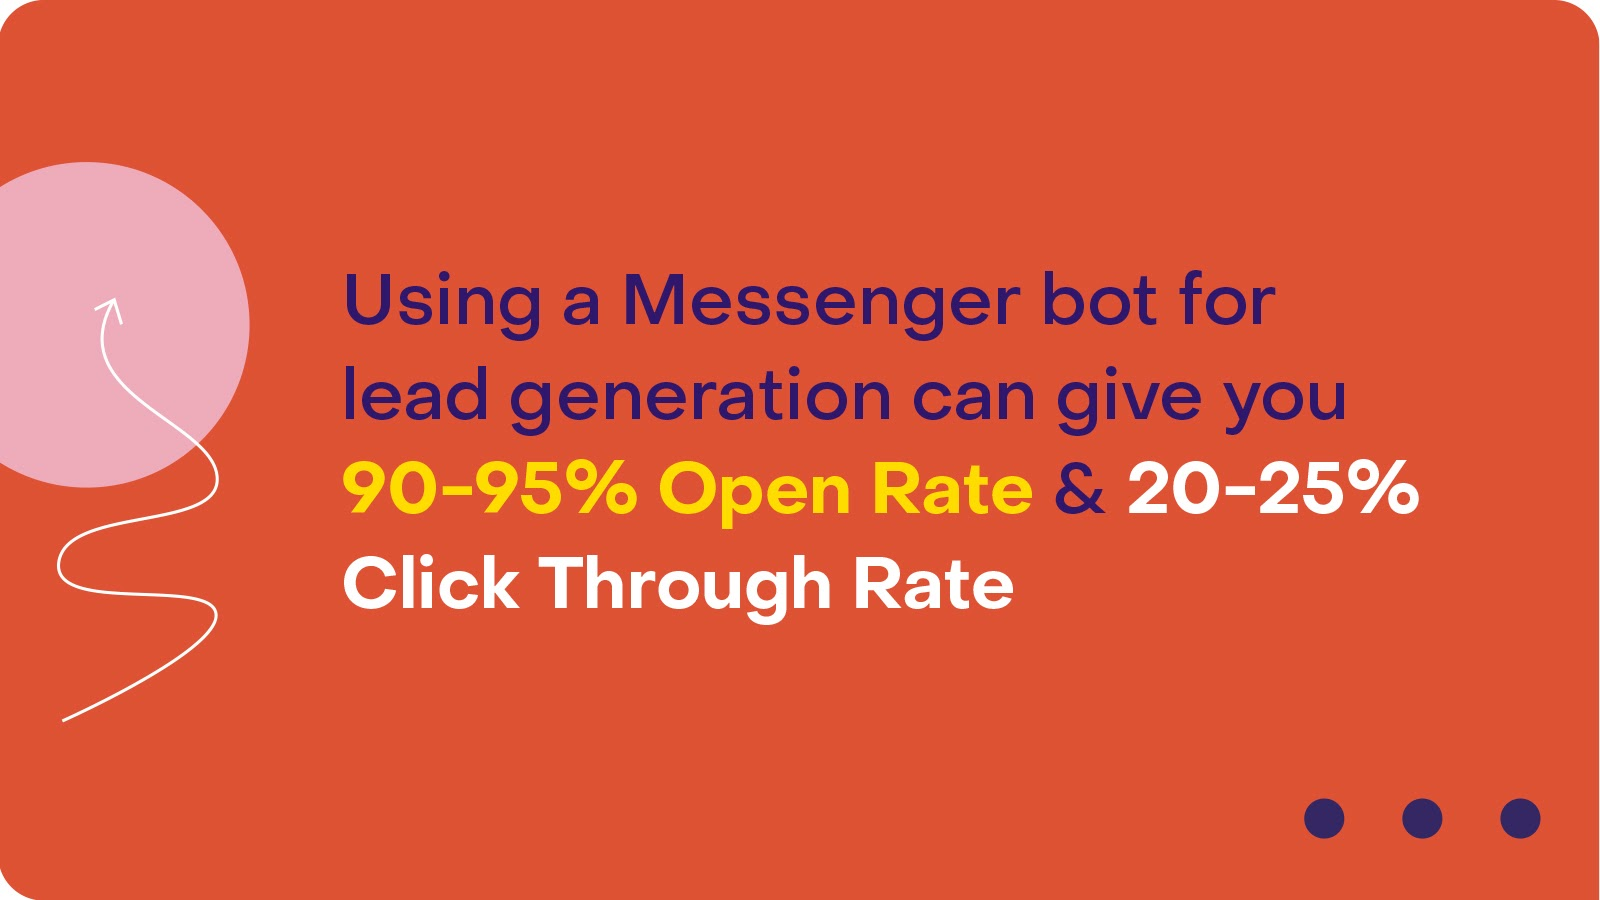 Open and click-through rate for Messenger Bots in lead generation_Heyday